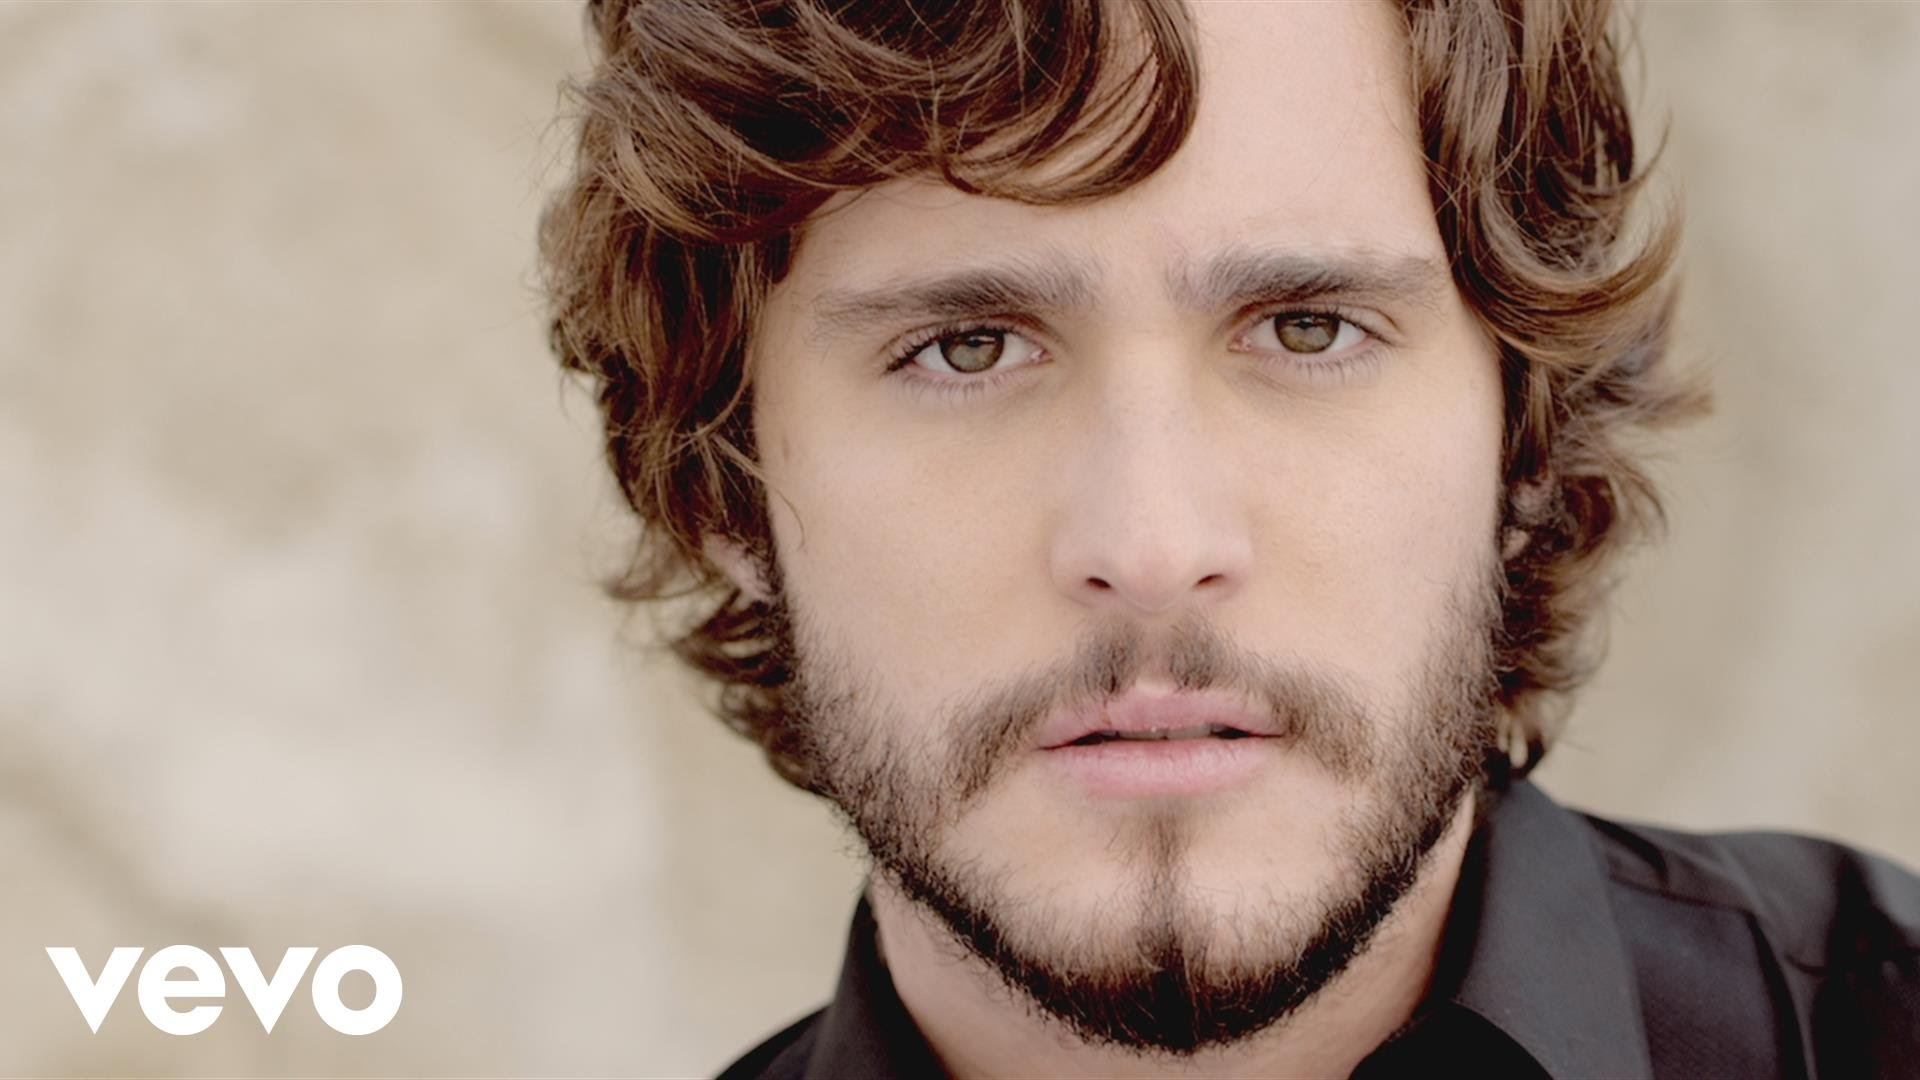 Diego Boneta Background